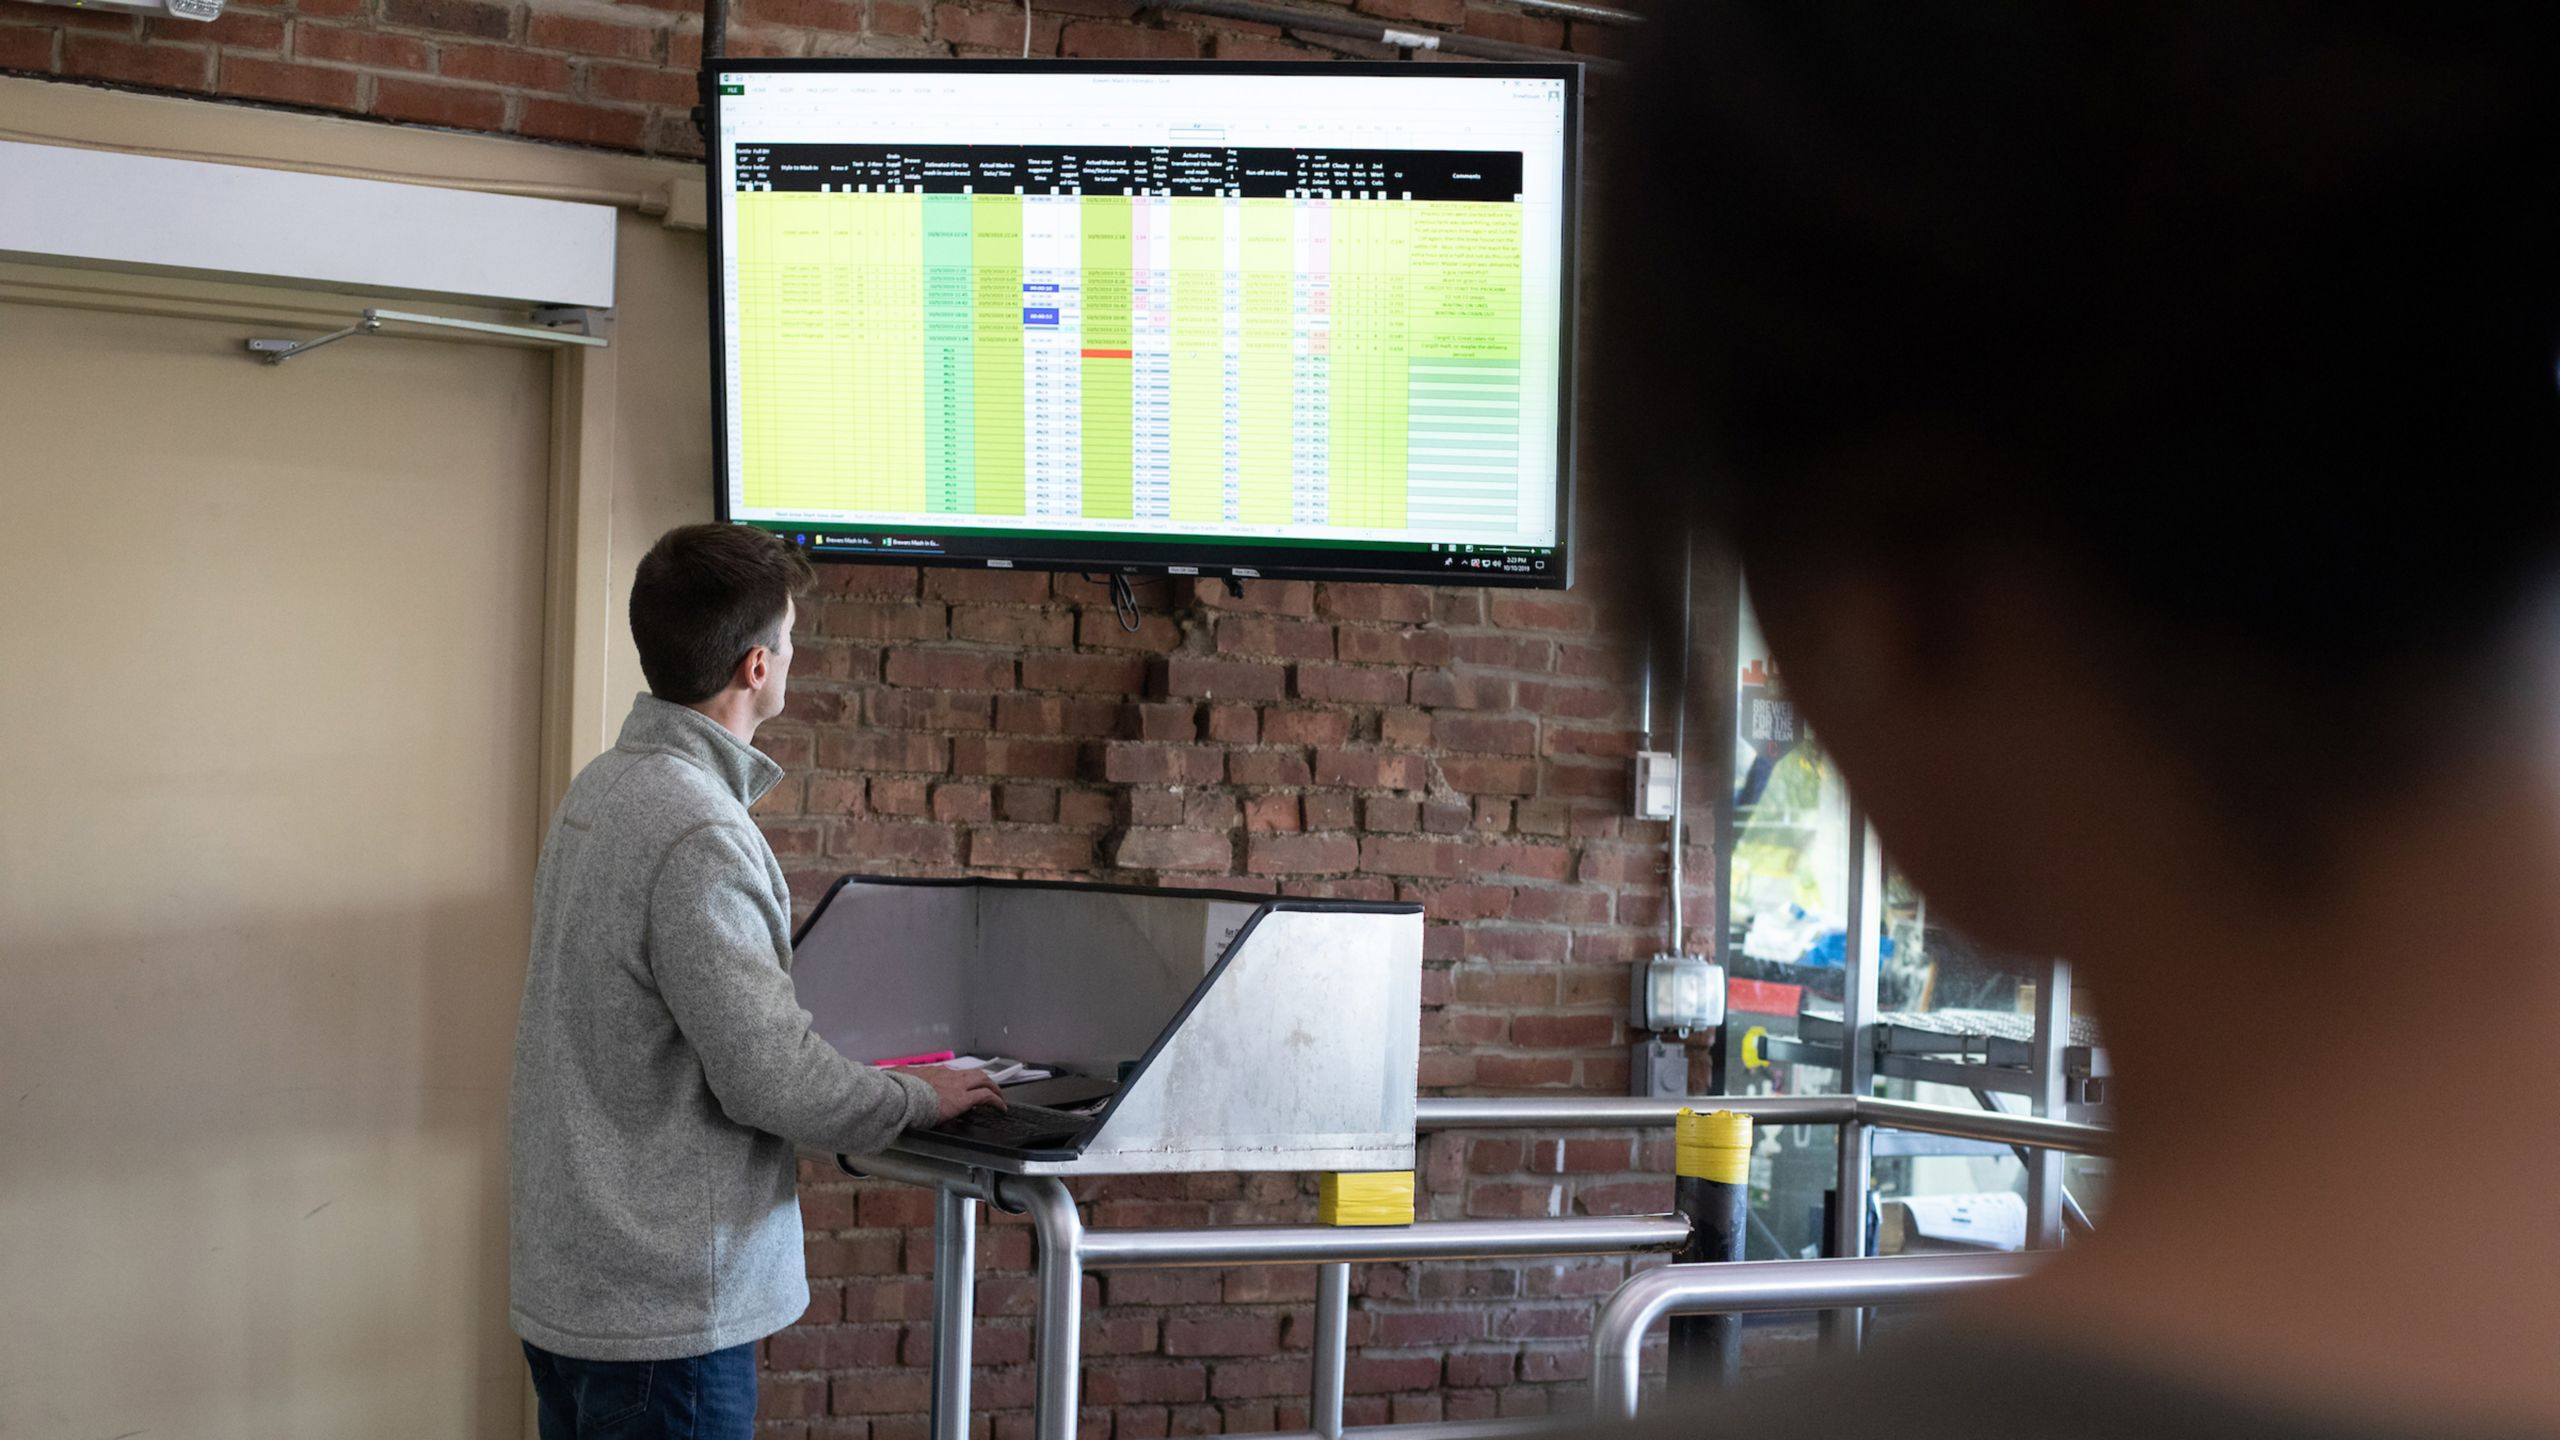 Rockwell Automation employee viewing FactoryTalk AssetCentre software on large monitor with coworker